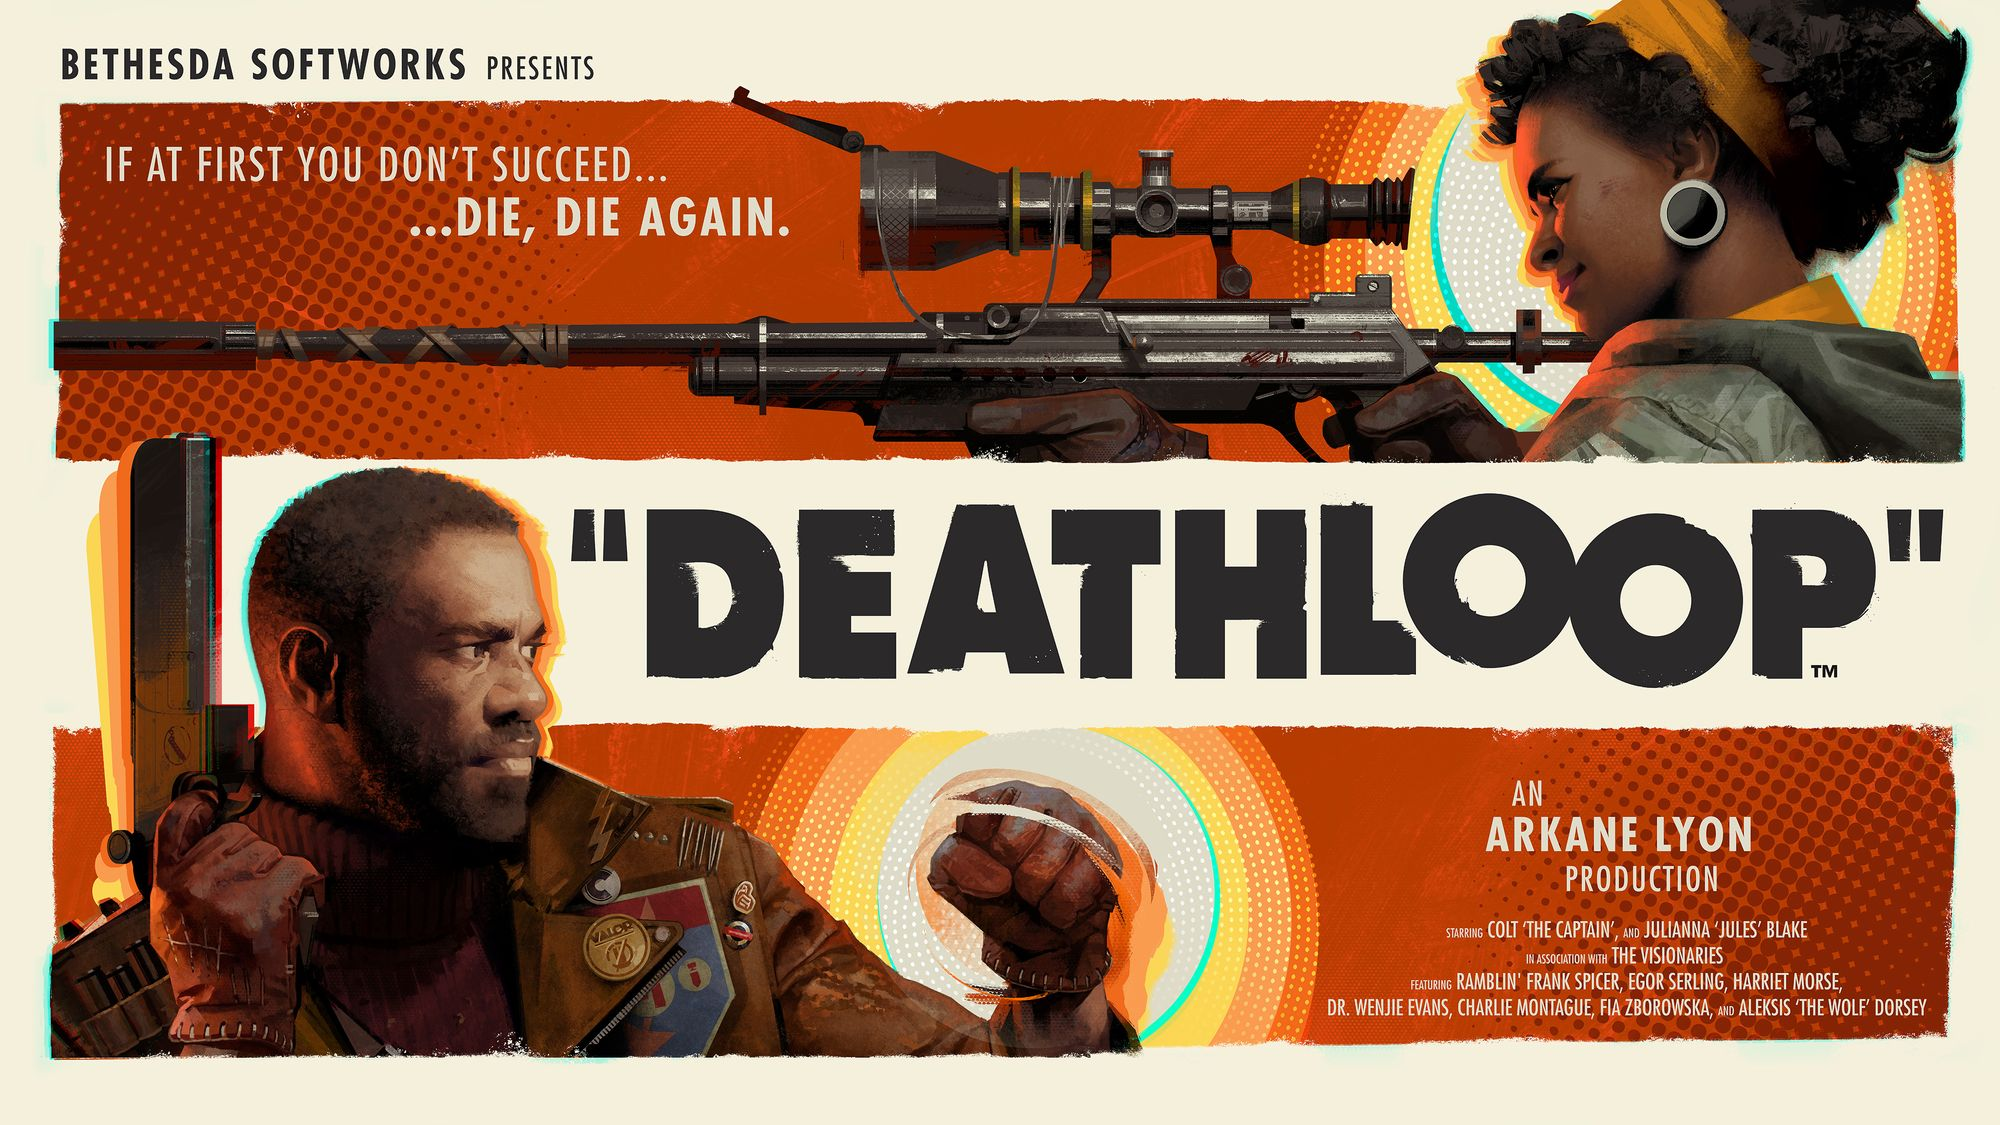 """Tthe logo / promotional information for the game Deathloop. """"If at first you don't succeed... die, die again""""."""